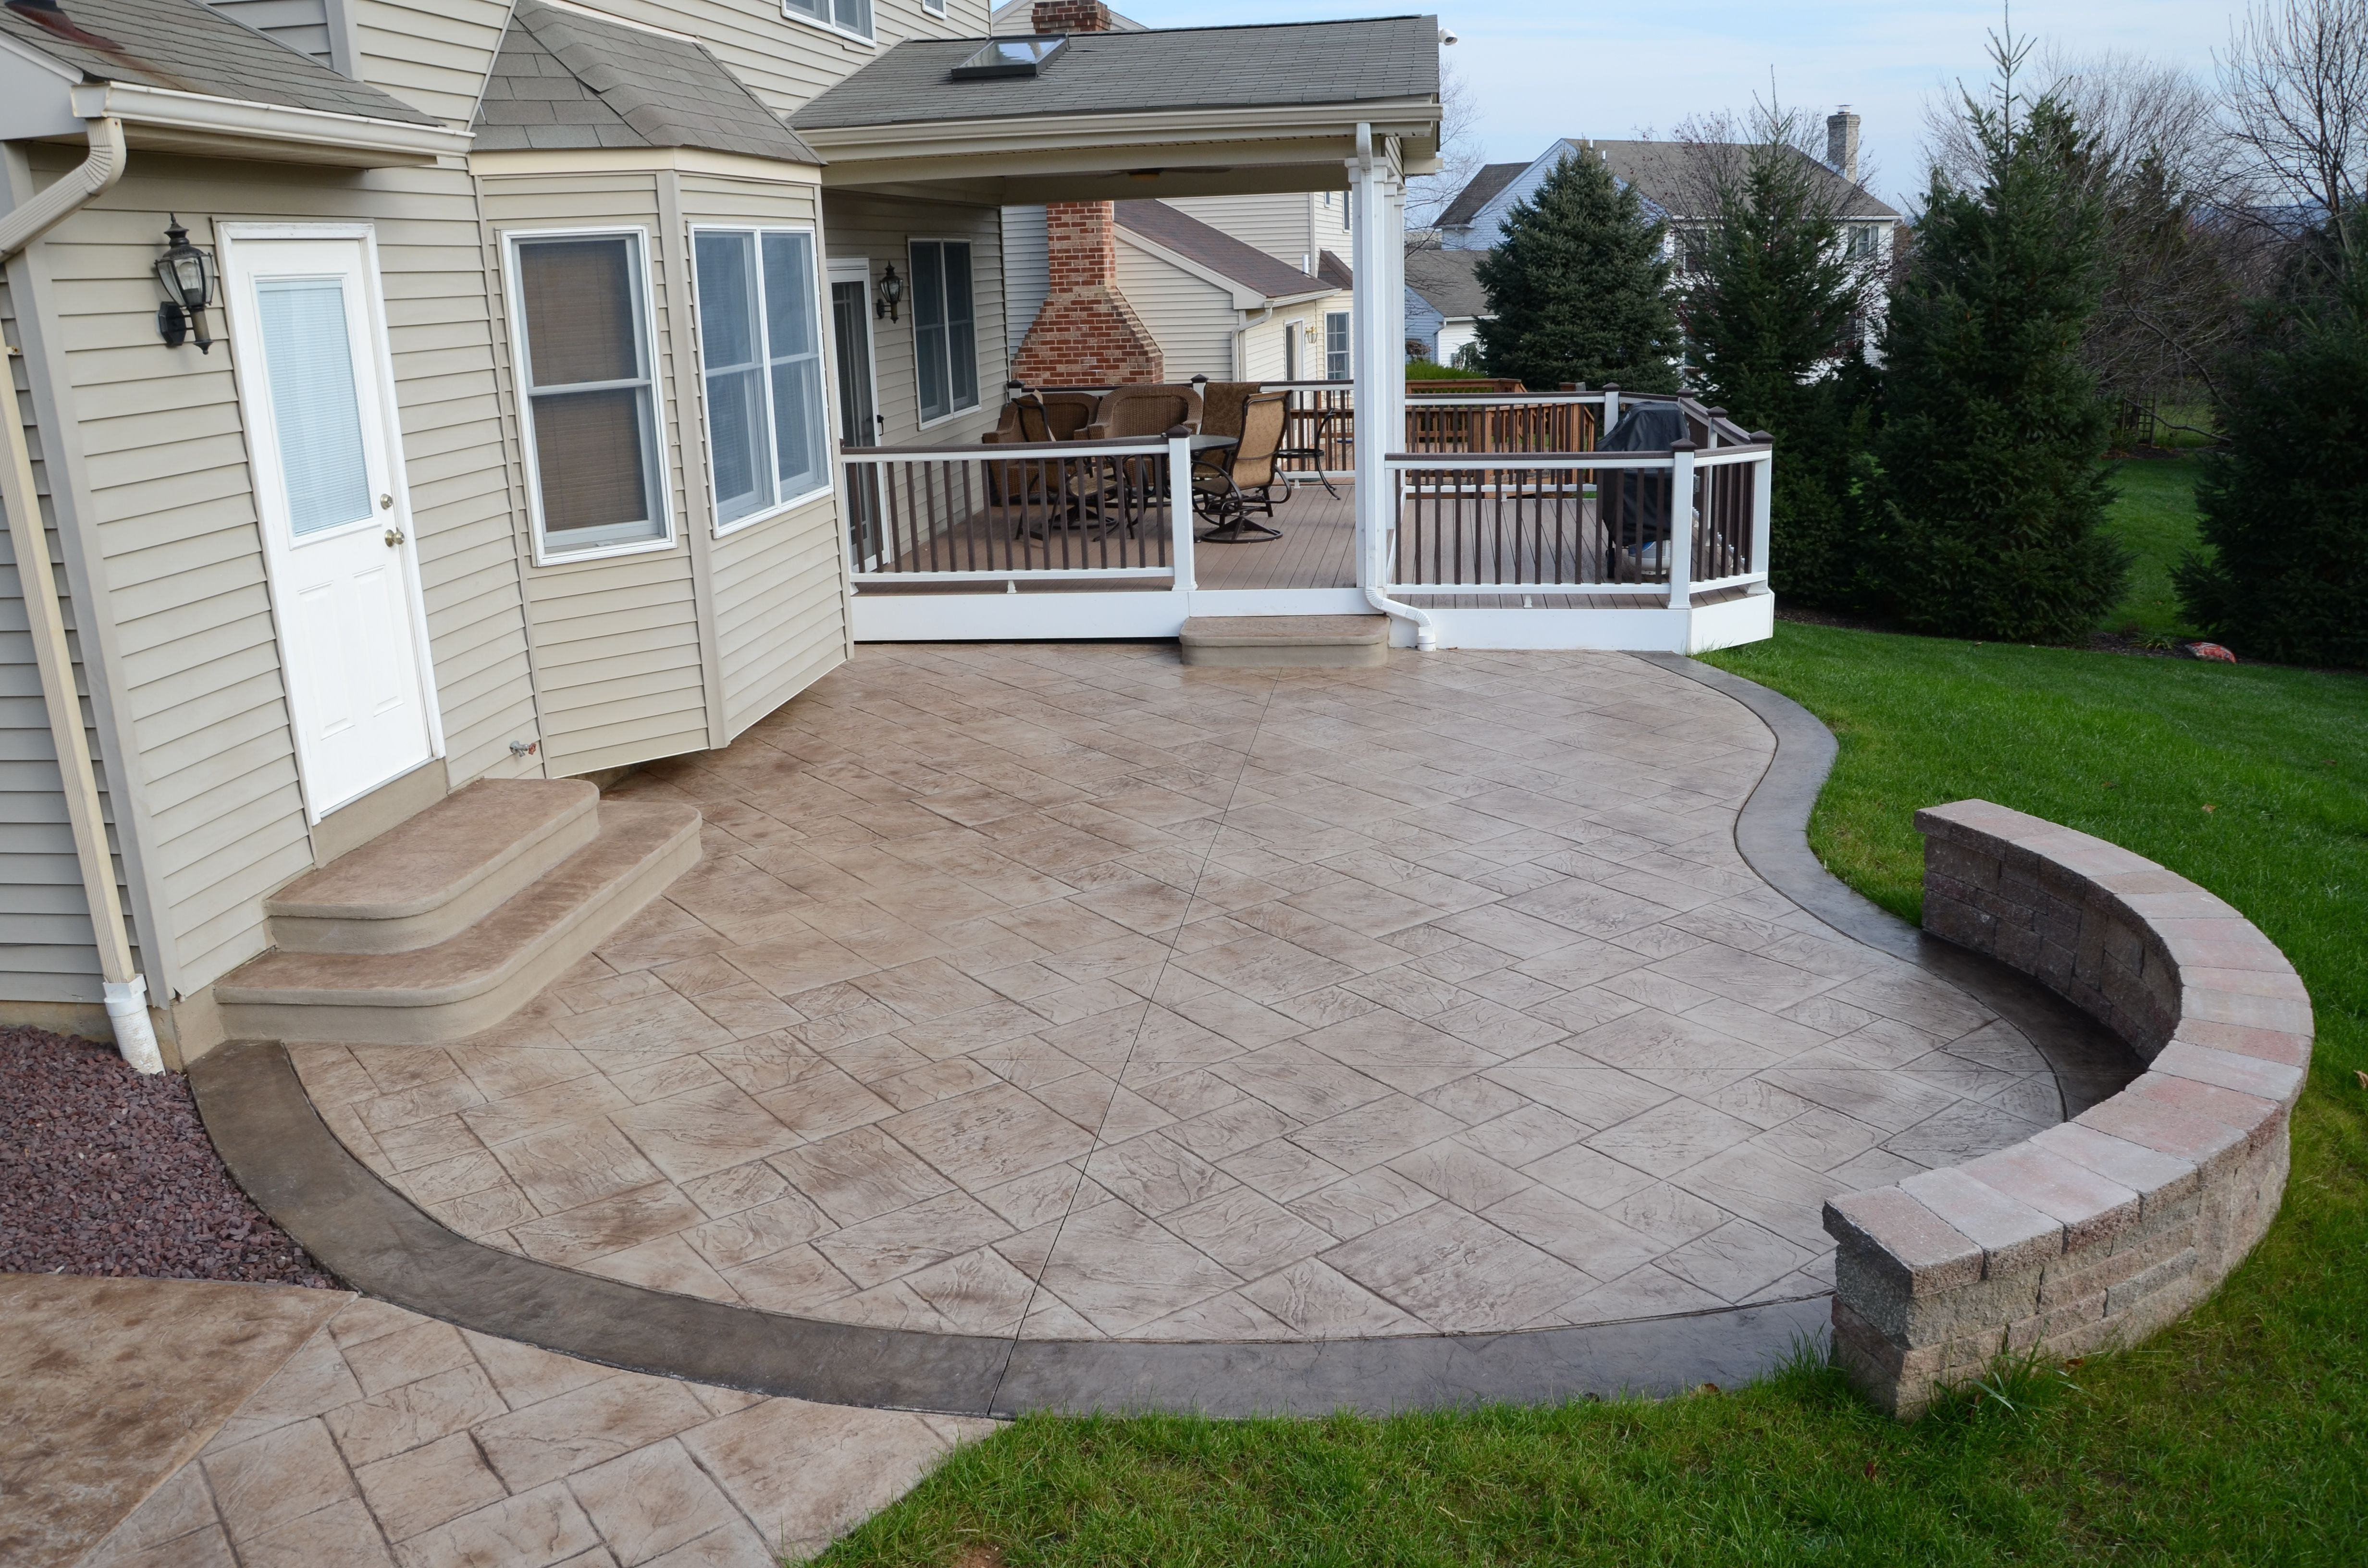 Traditional House Exterior Design With Simple Stamped ... on Simple Concrete Patio Designs id=32867